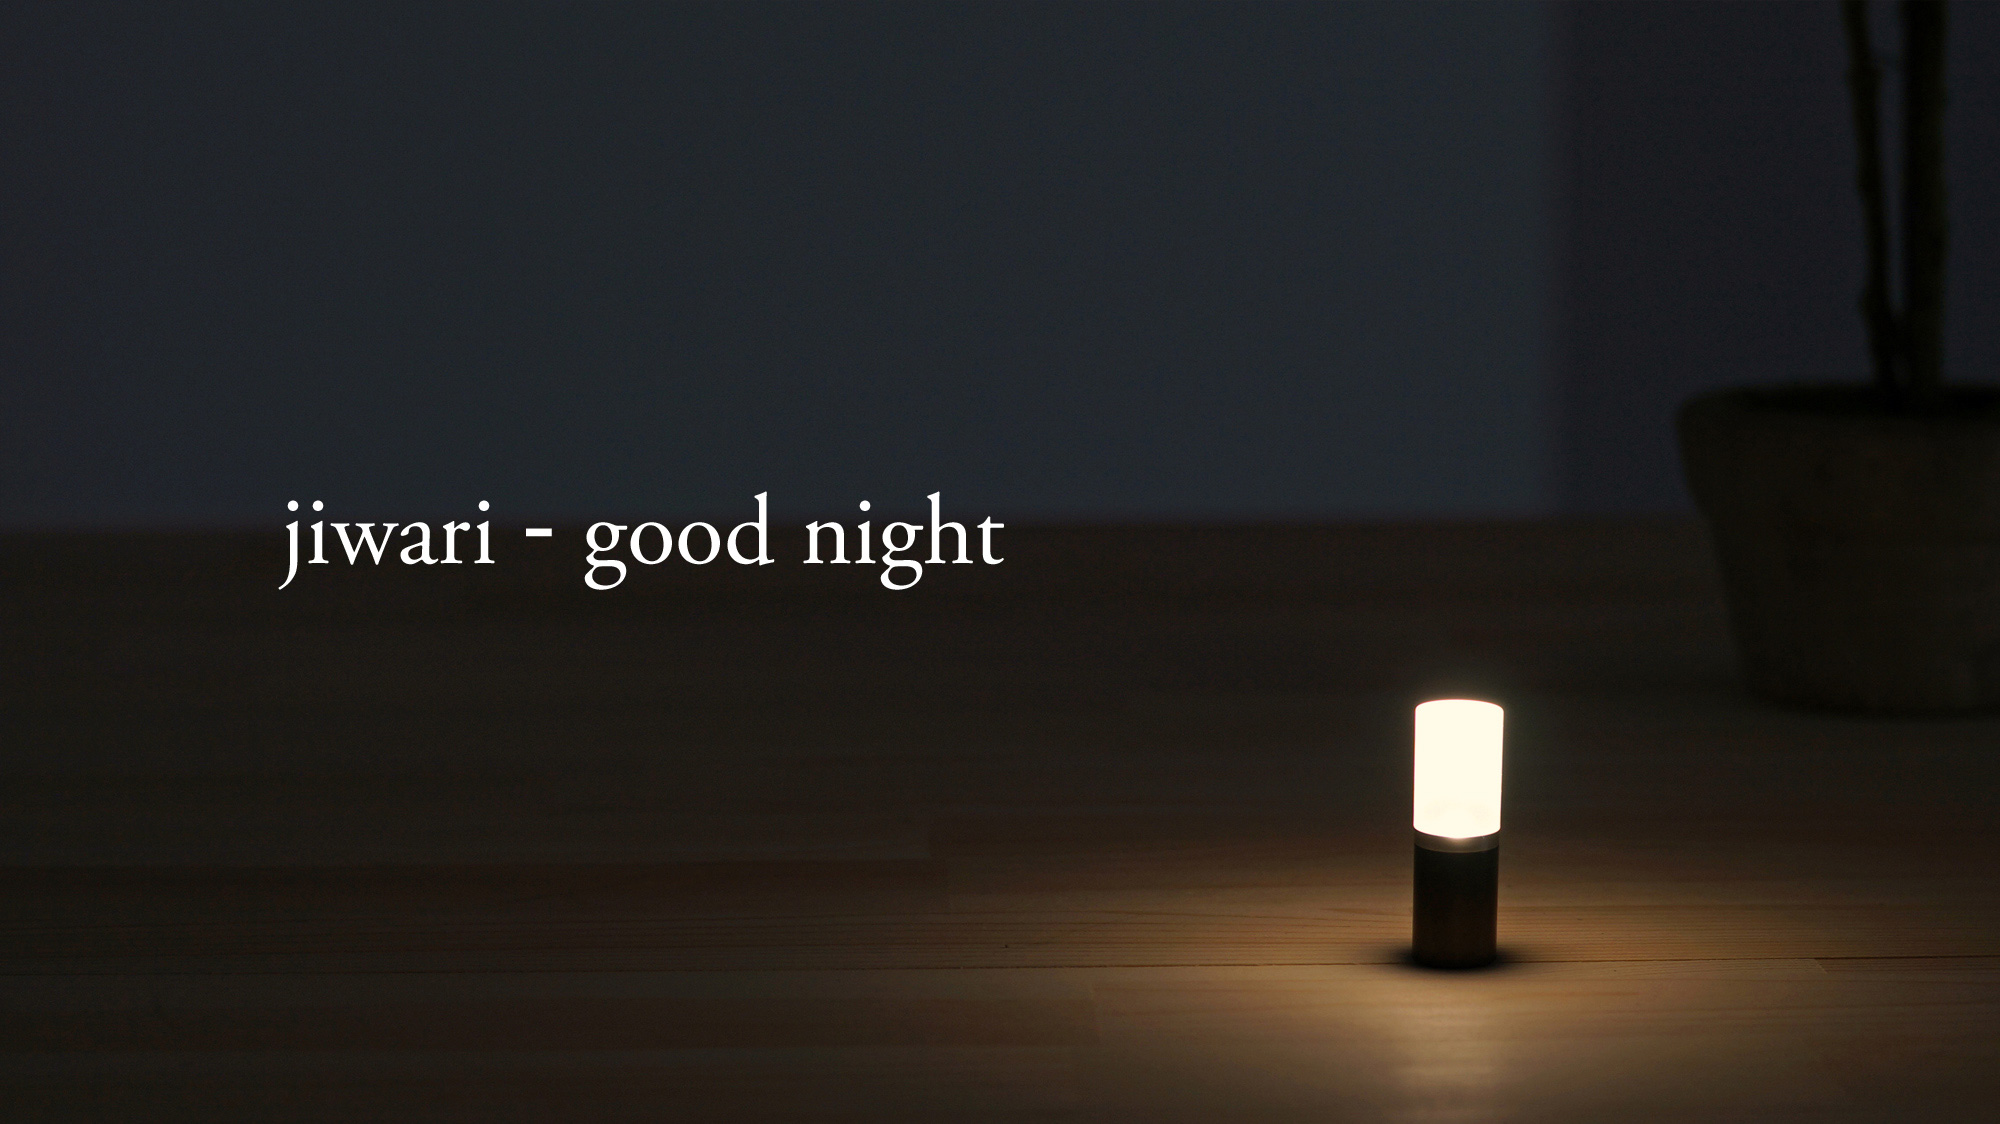 jiwari-good night